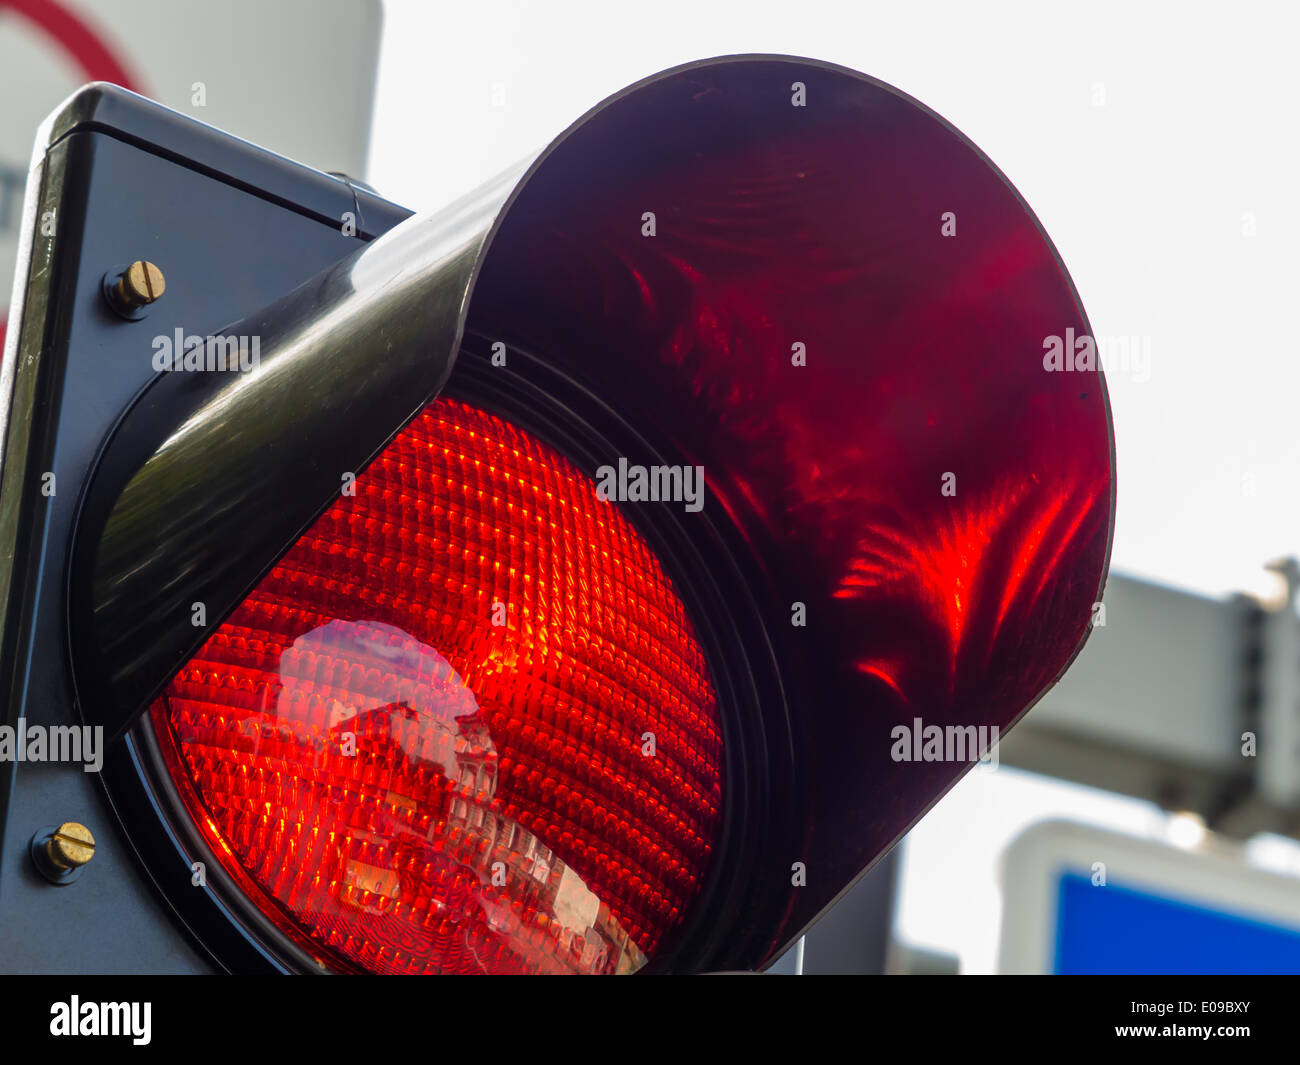 On a traffic light there shines the red light. - Stock Image